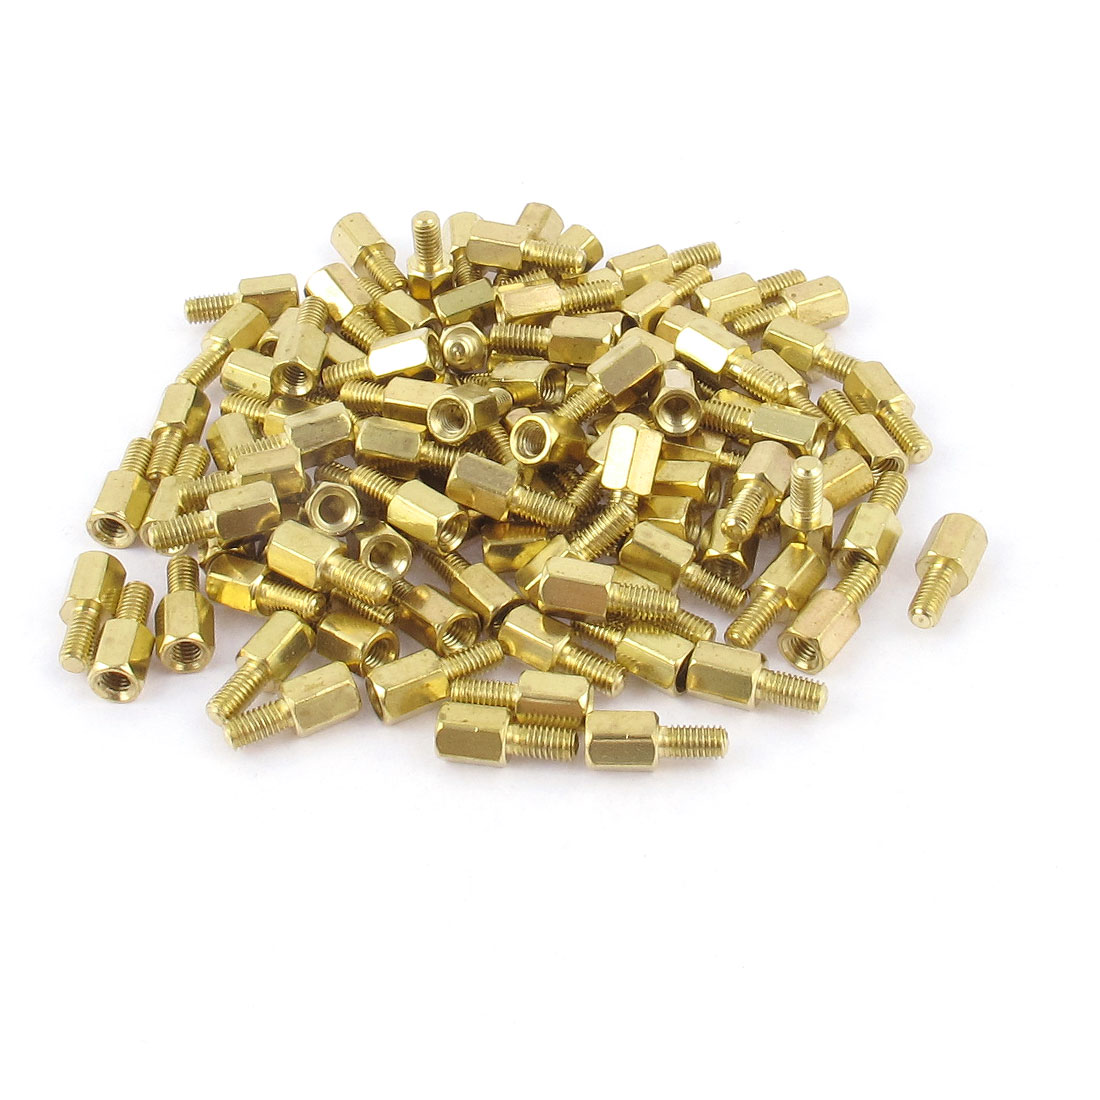 100Pcs M3 Male Female Brass PCB Spacer Hex Stand-Off Screw Pillar